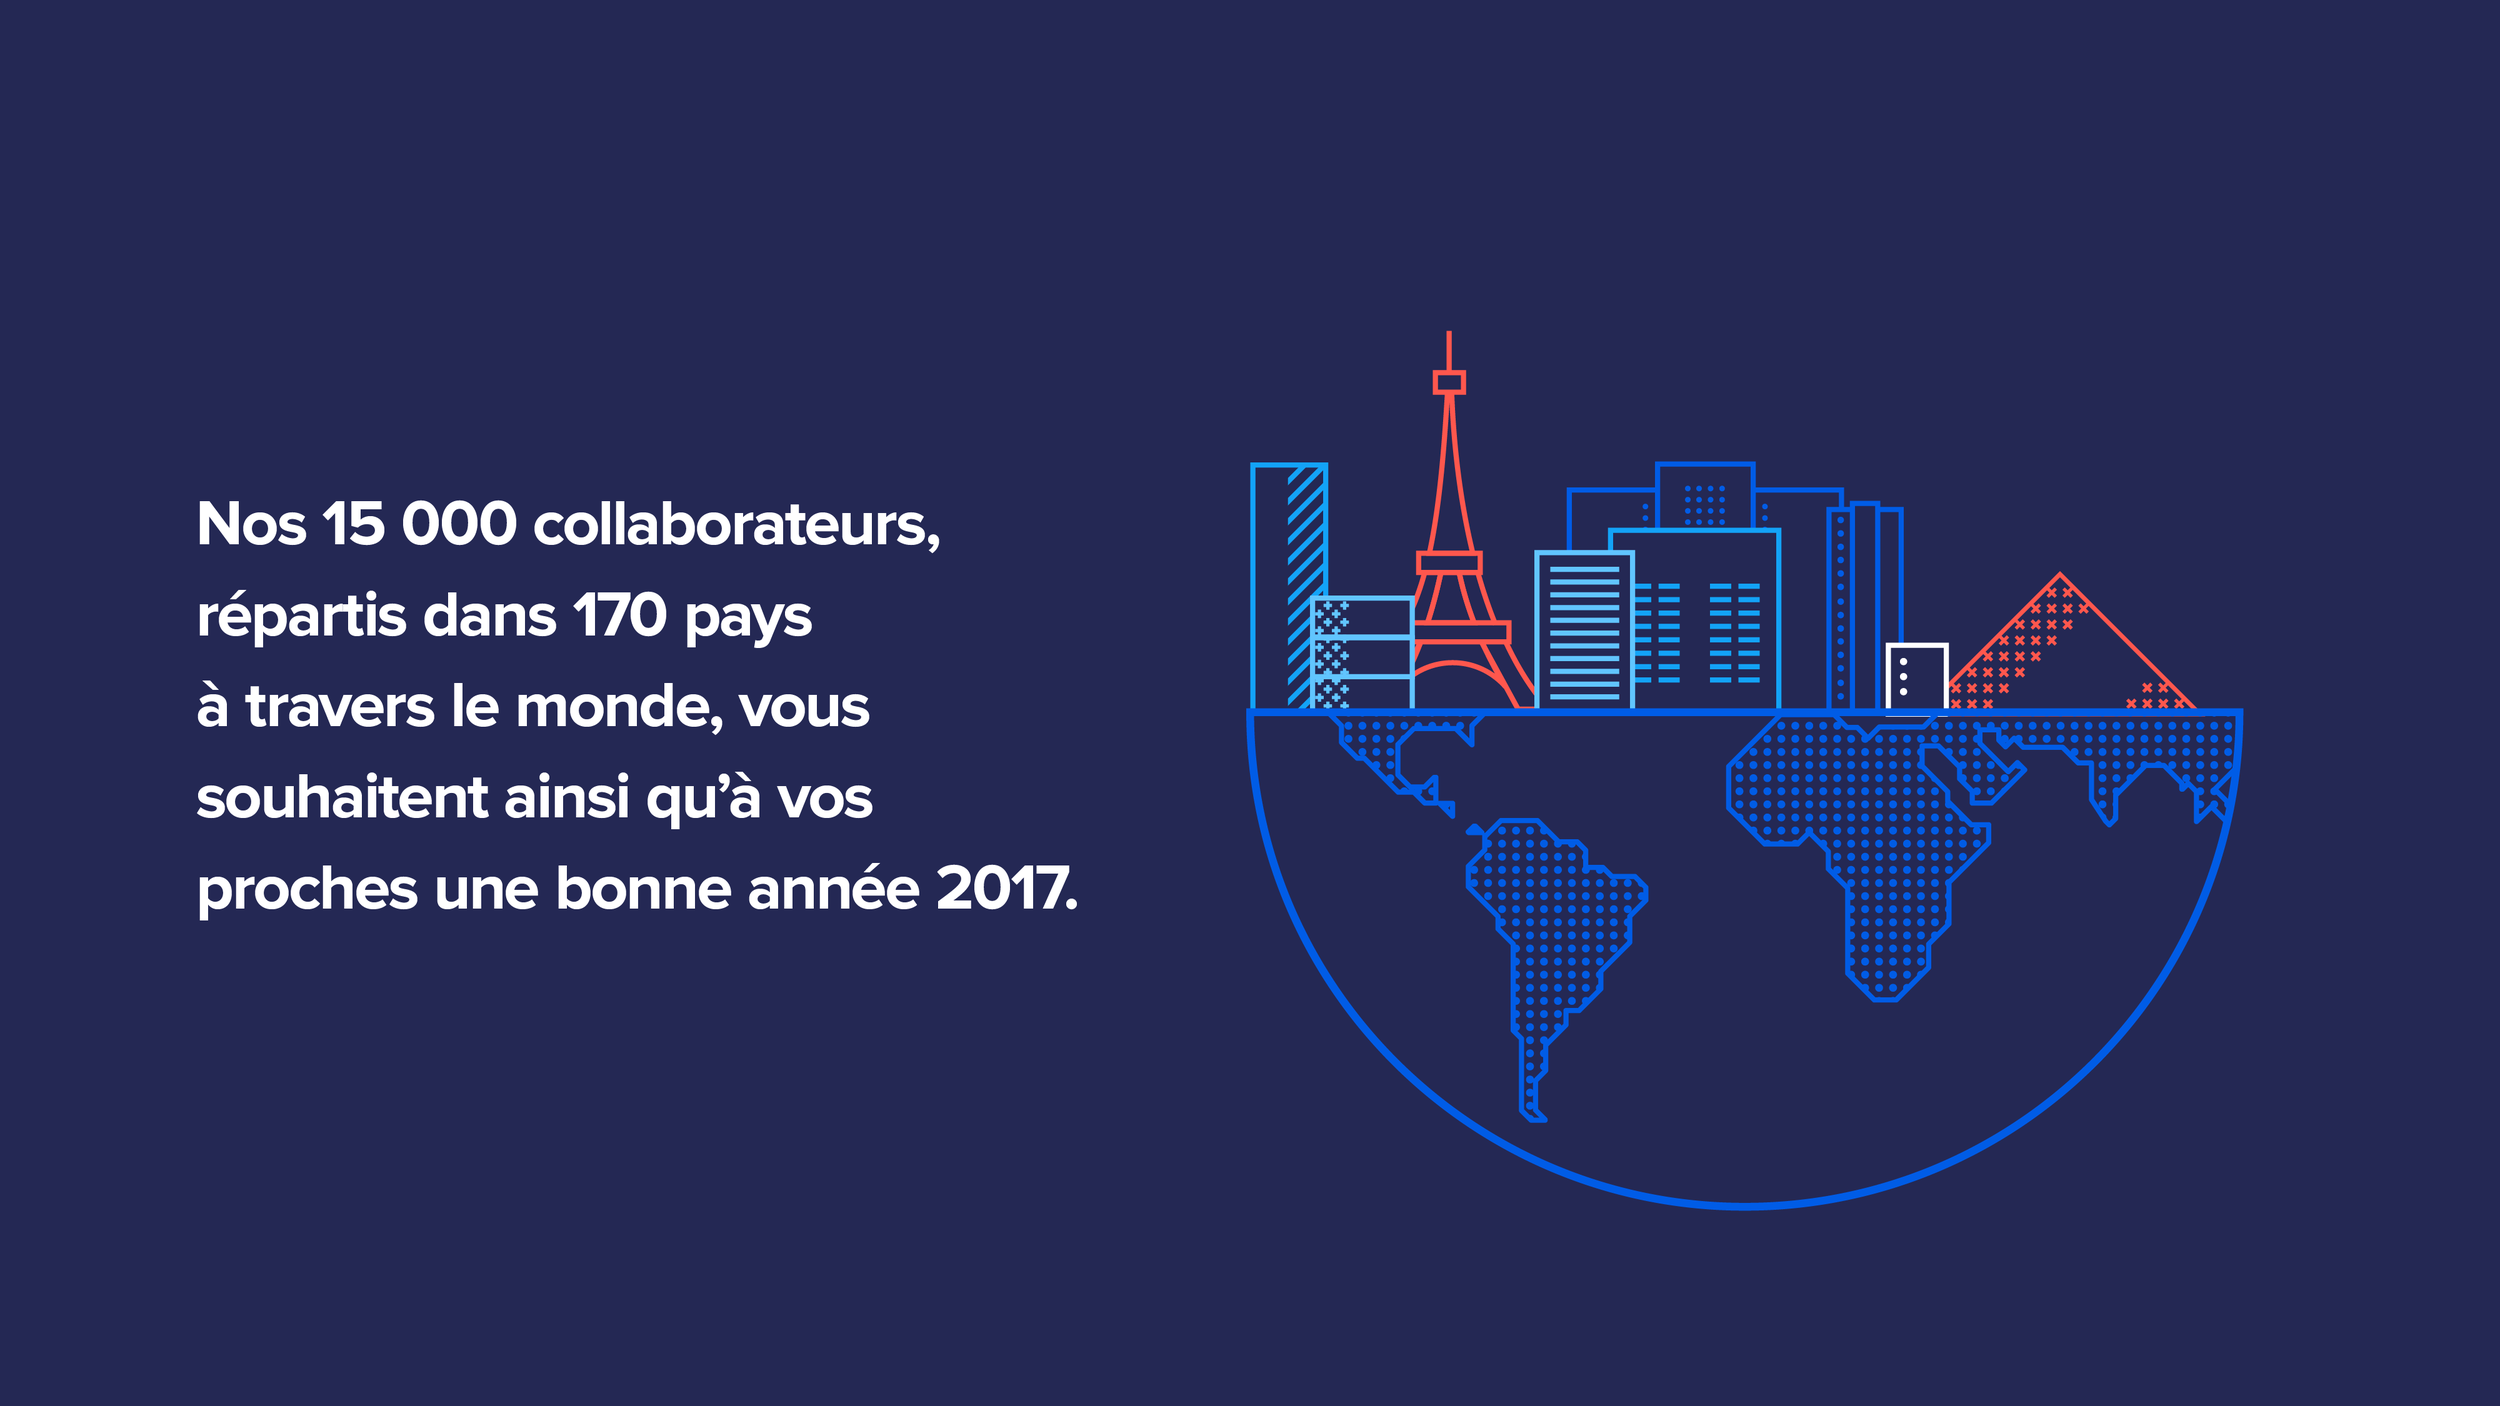 infor_holiday_card_121816_MD_France.png